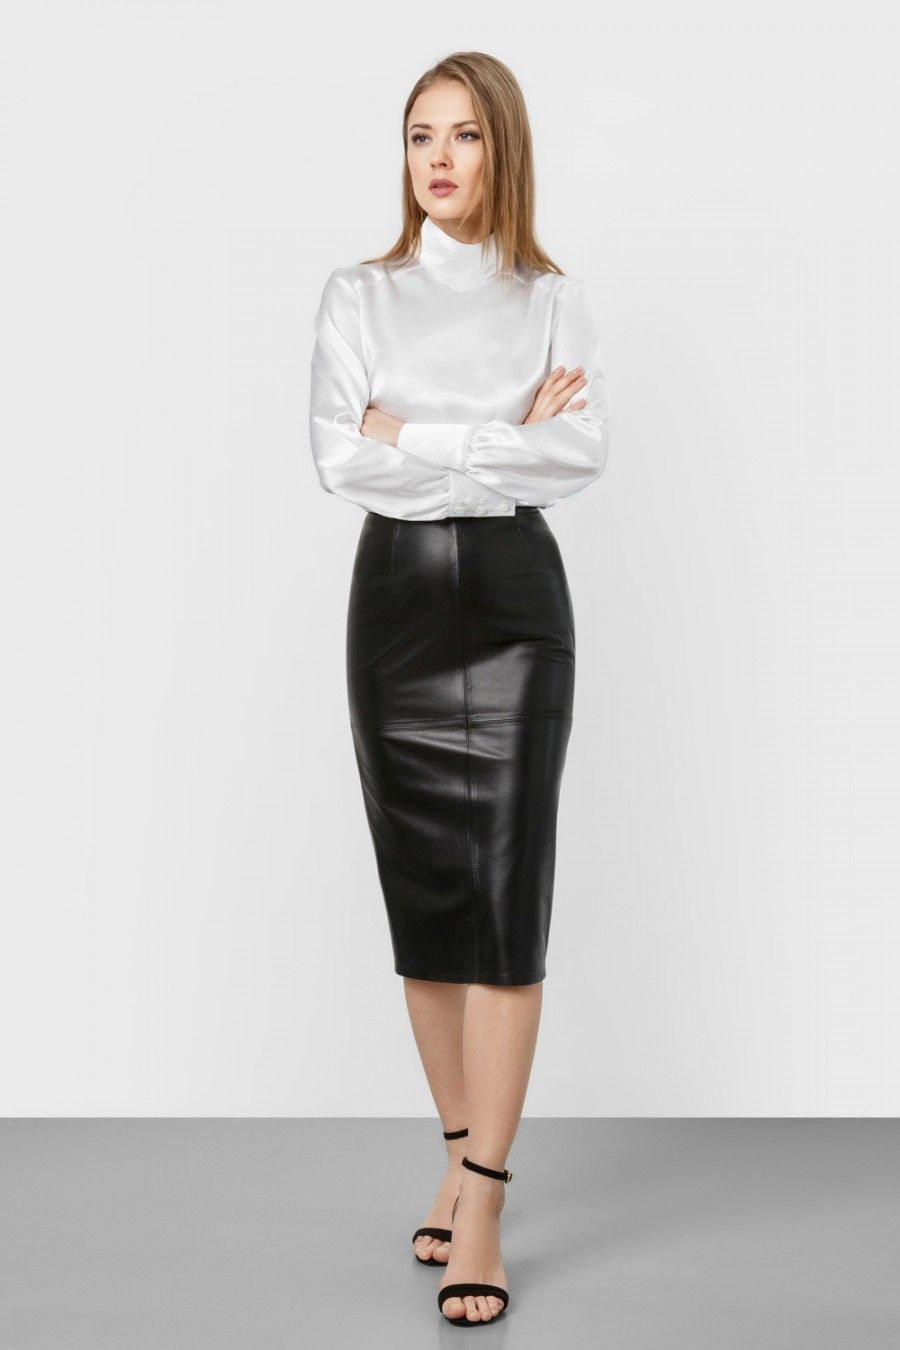 a2673012c0 White satin long sleeve blouse with black leather skirt | leather ...